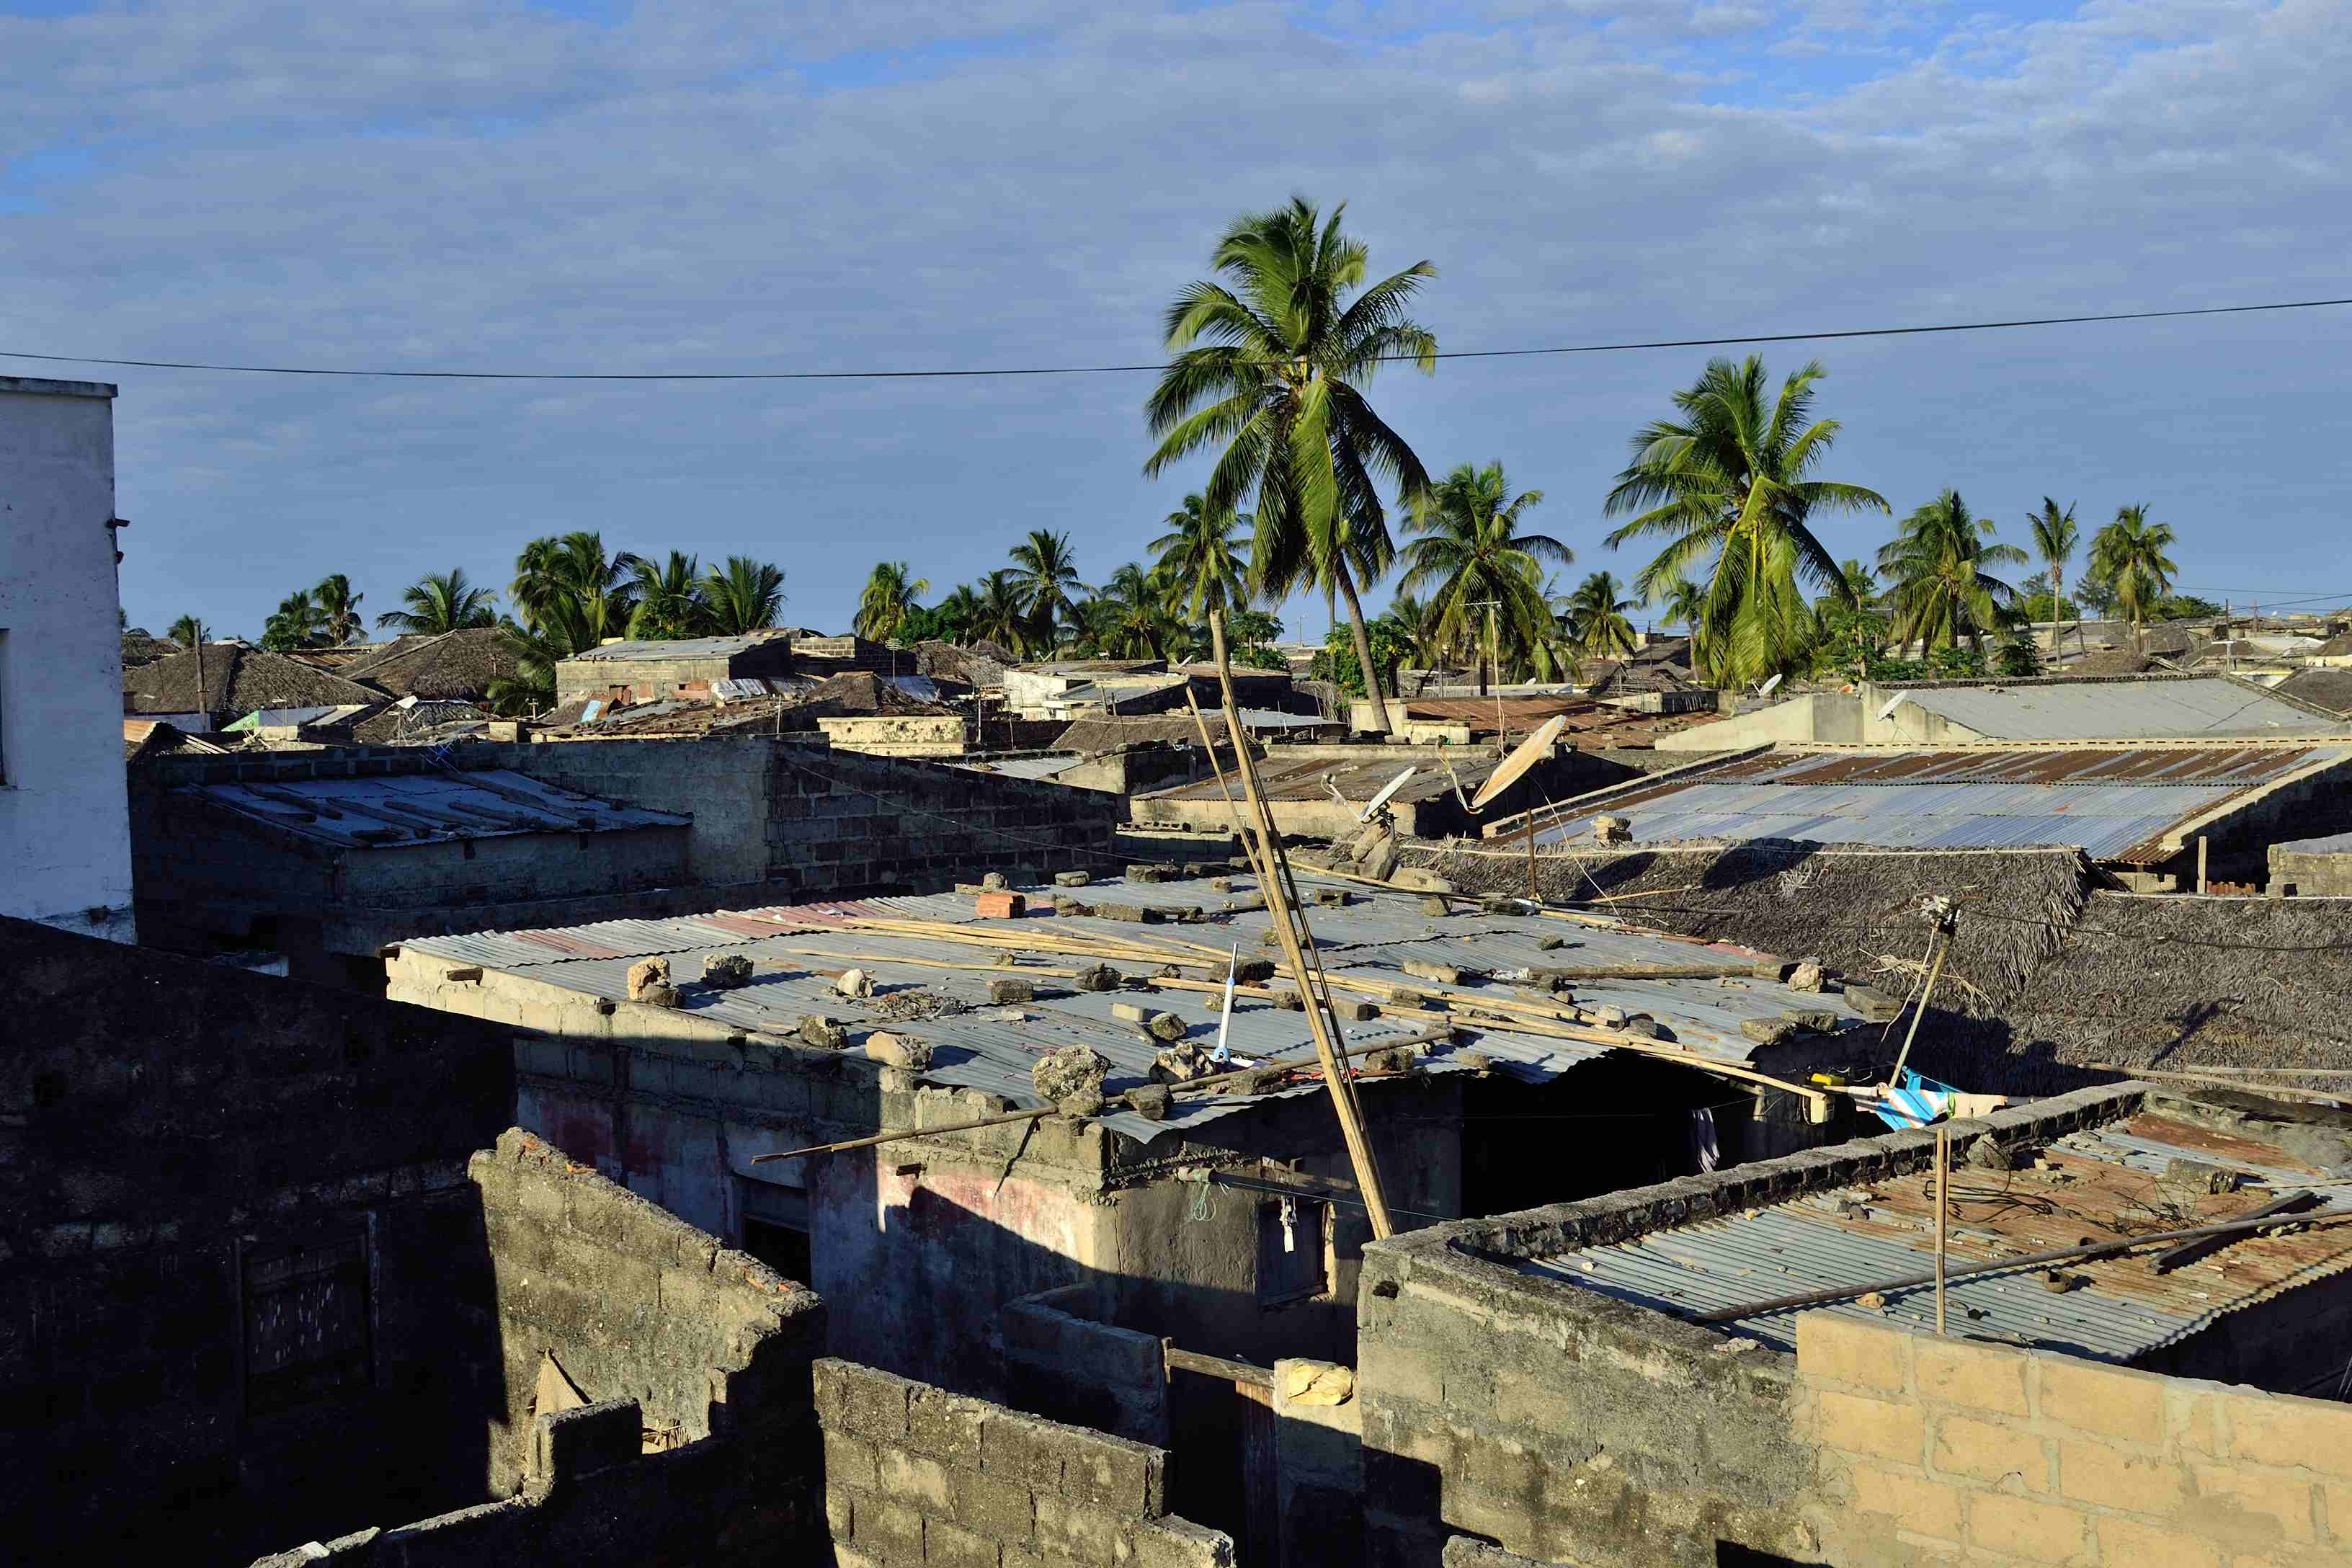 The island is overpopulated with people living in squalid shacks.